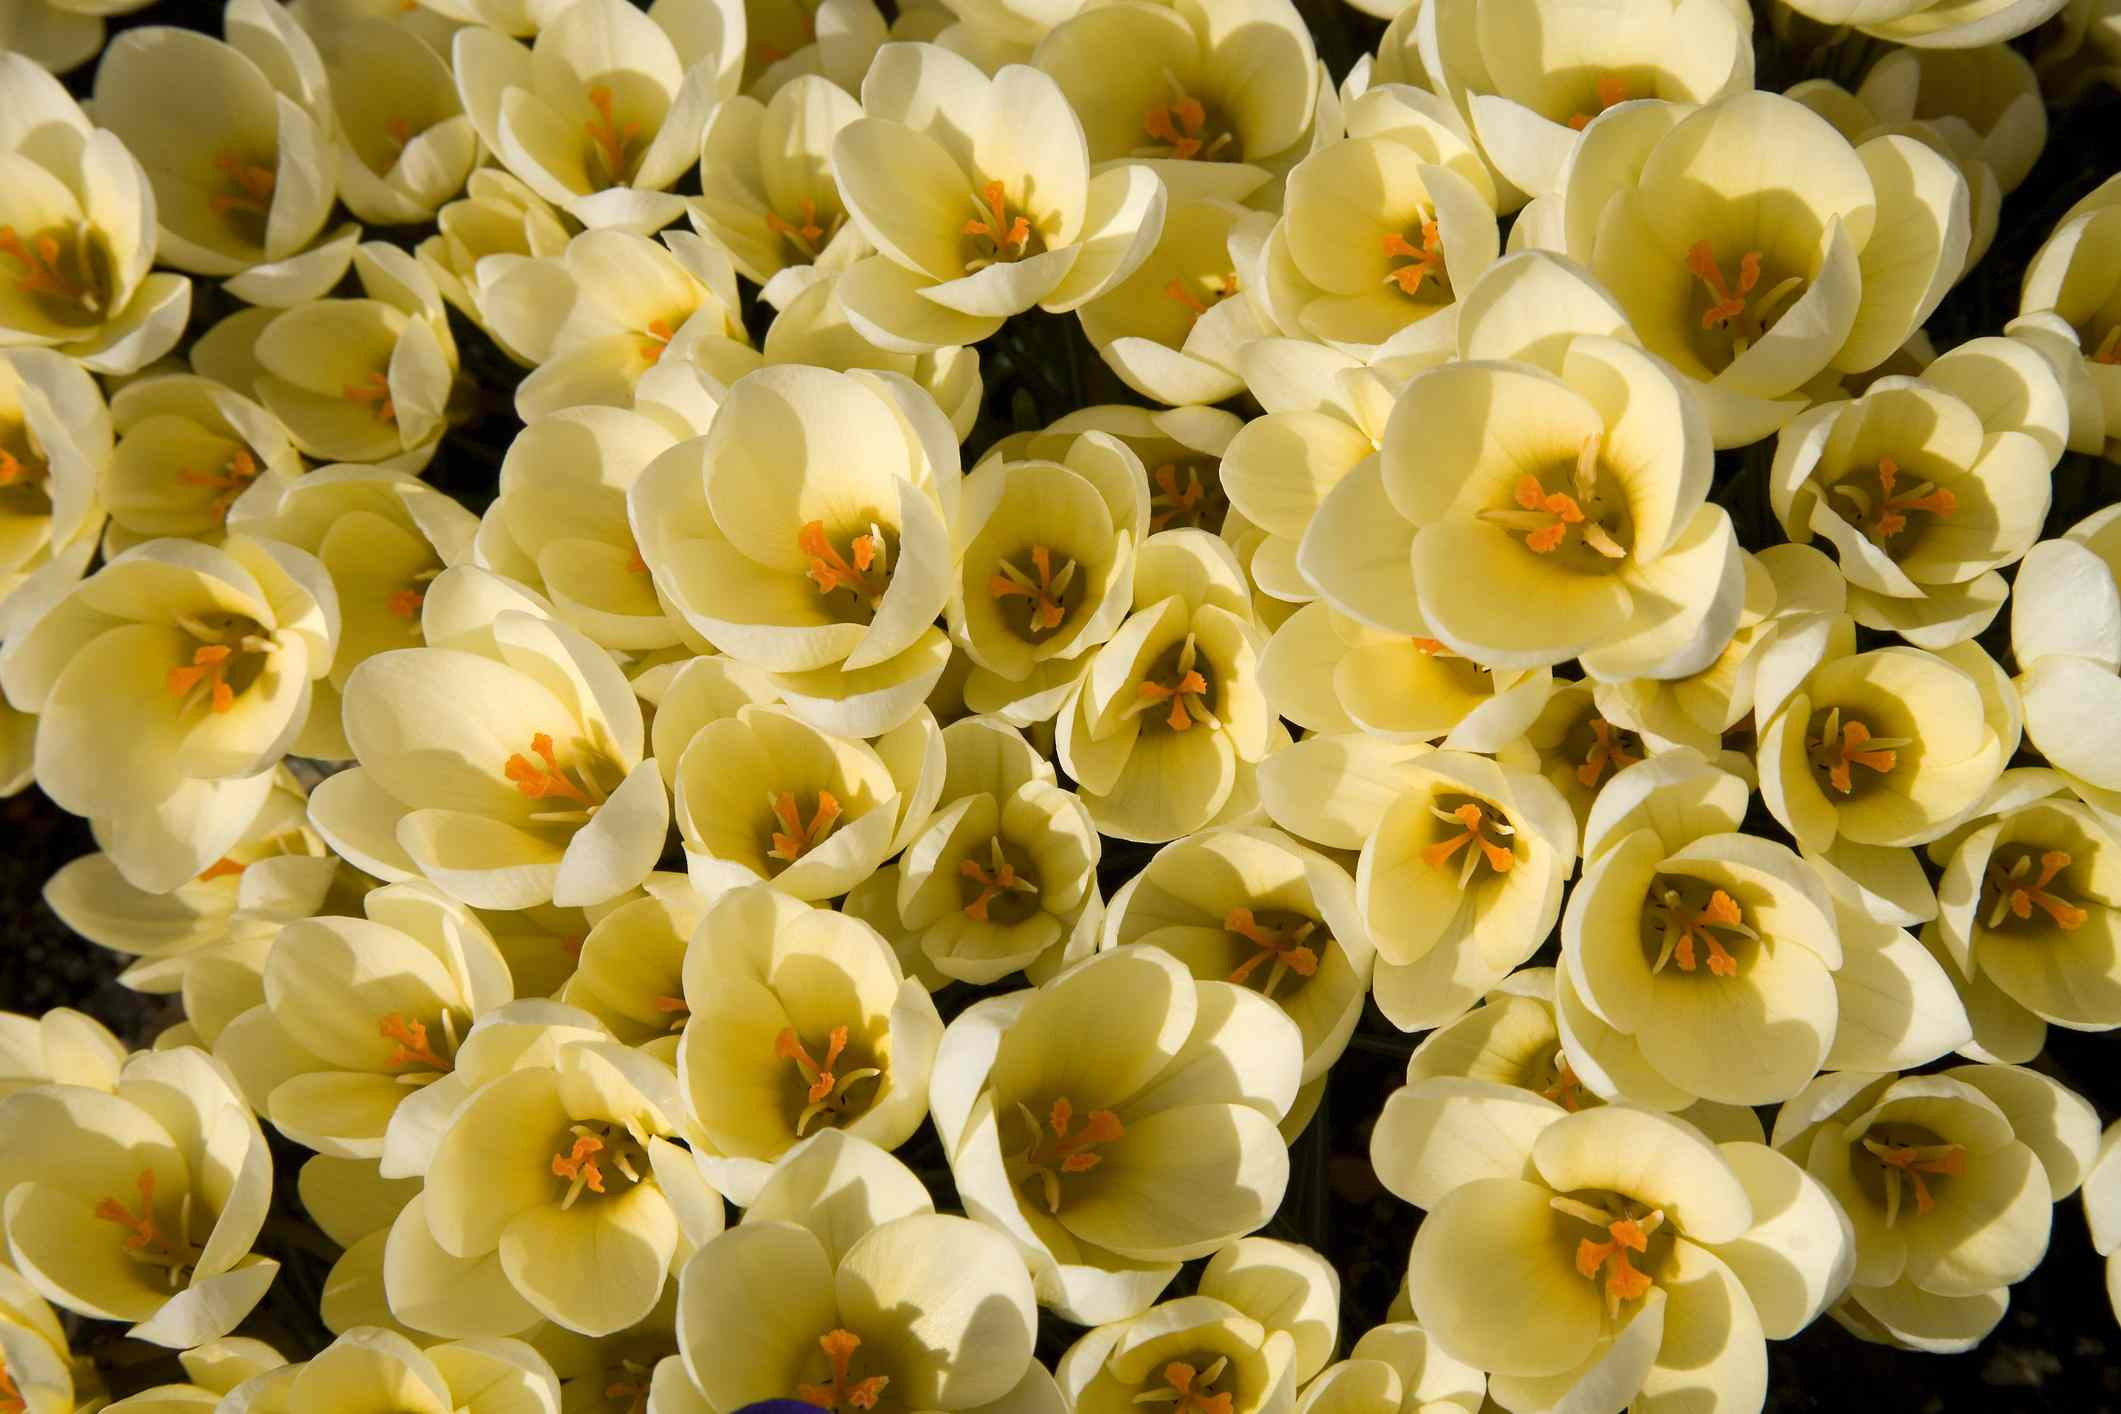 'Cream Beauty' crocus with pale yellow flowers